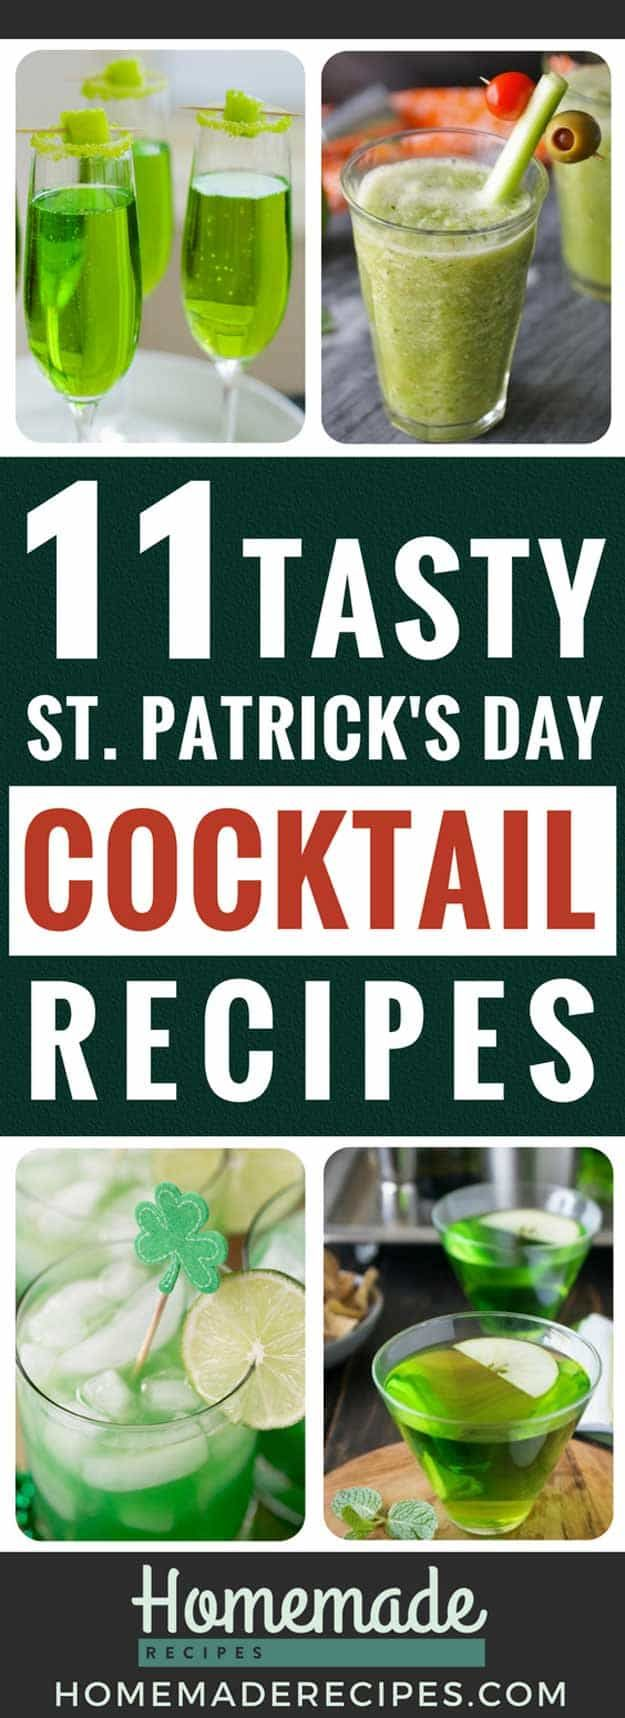 11 Cocktail Recipes For St. Patrick's Day   https://homemaderecipes.com/11-cocktail-recipes-st-patricks-day/